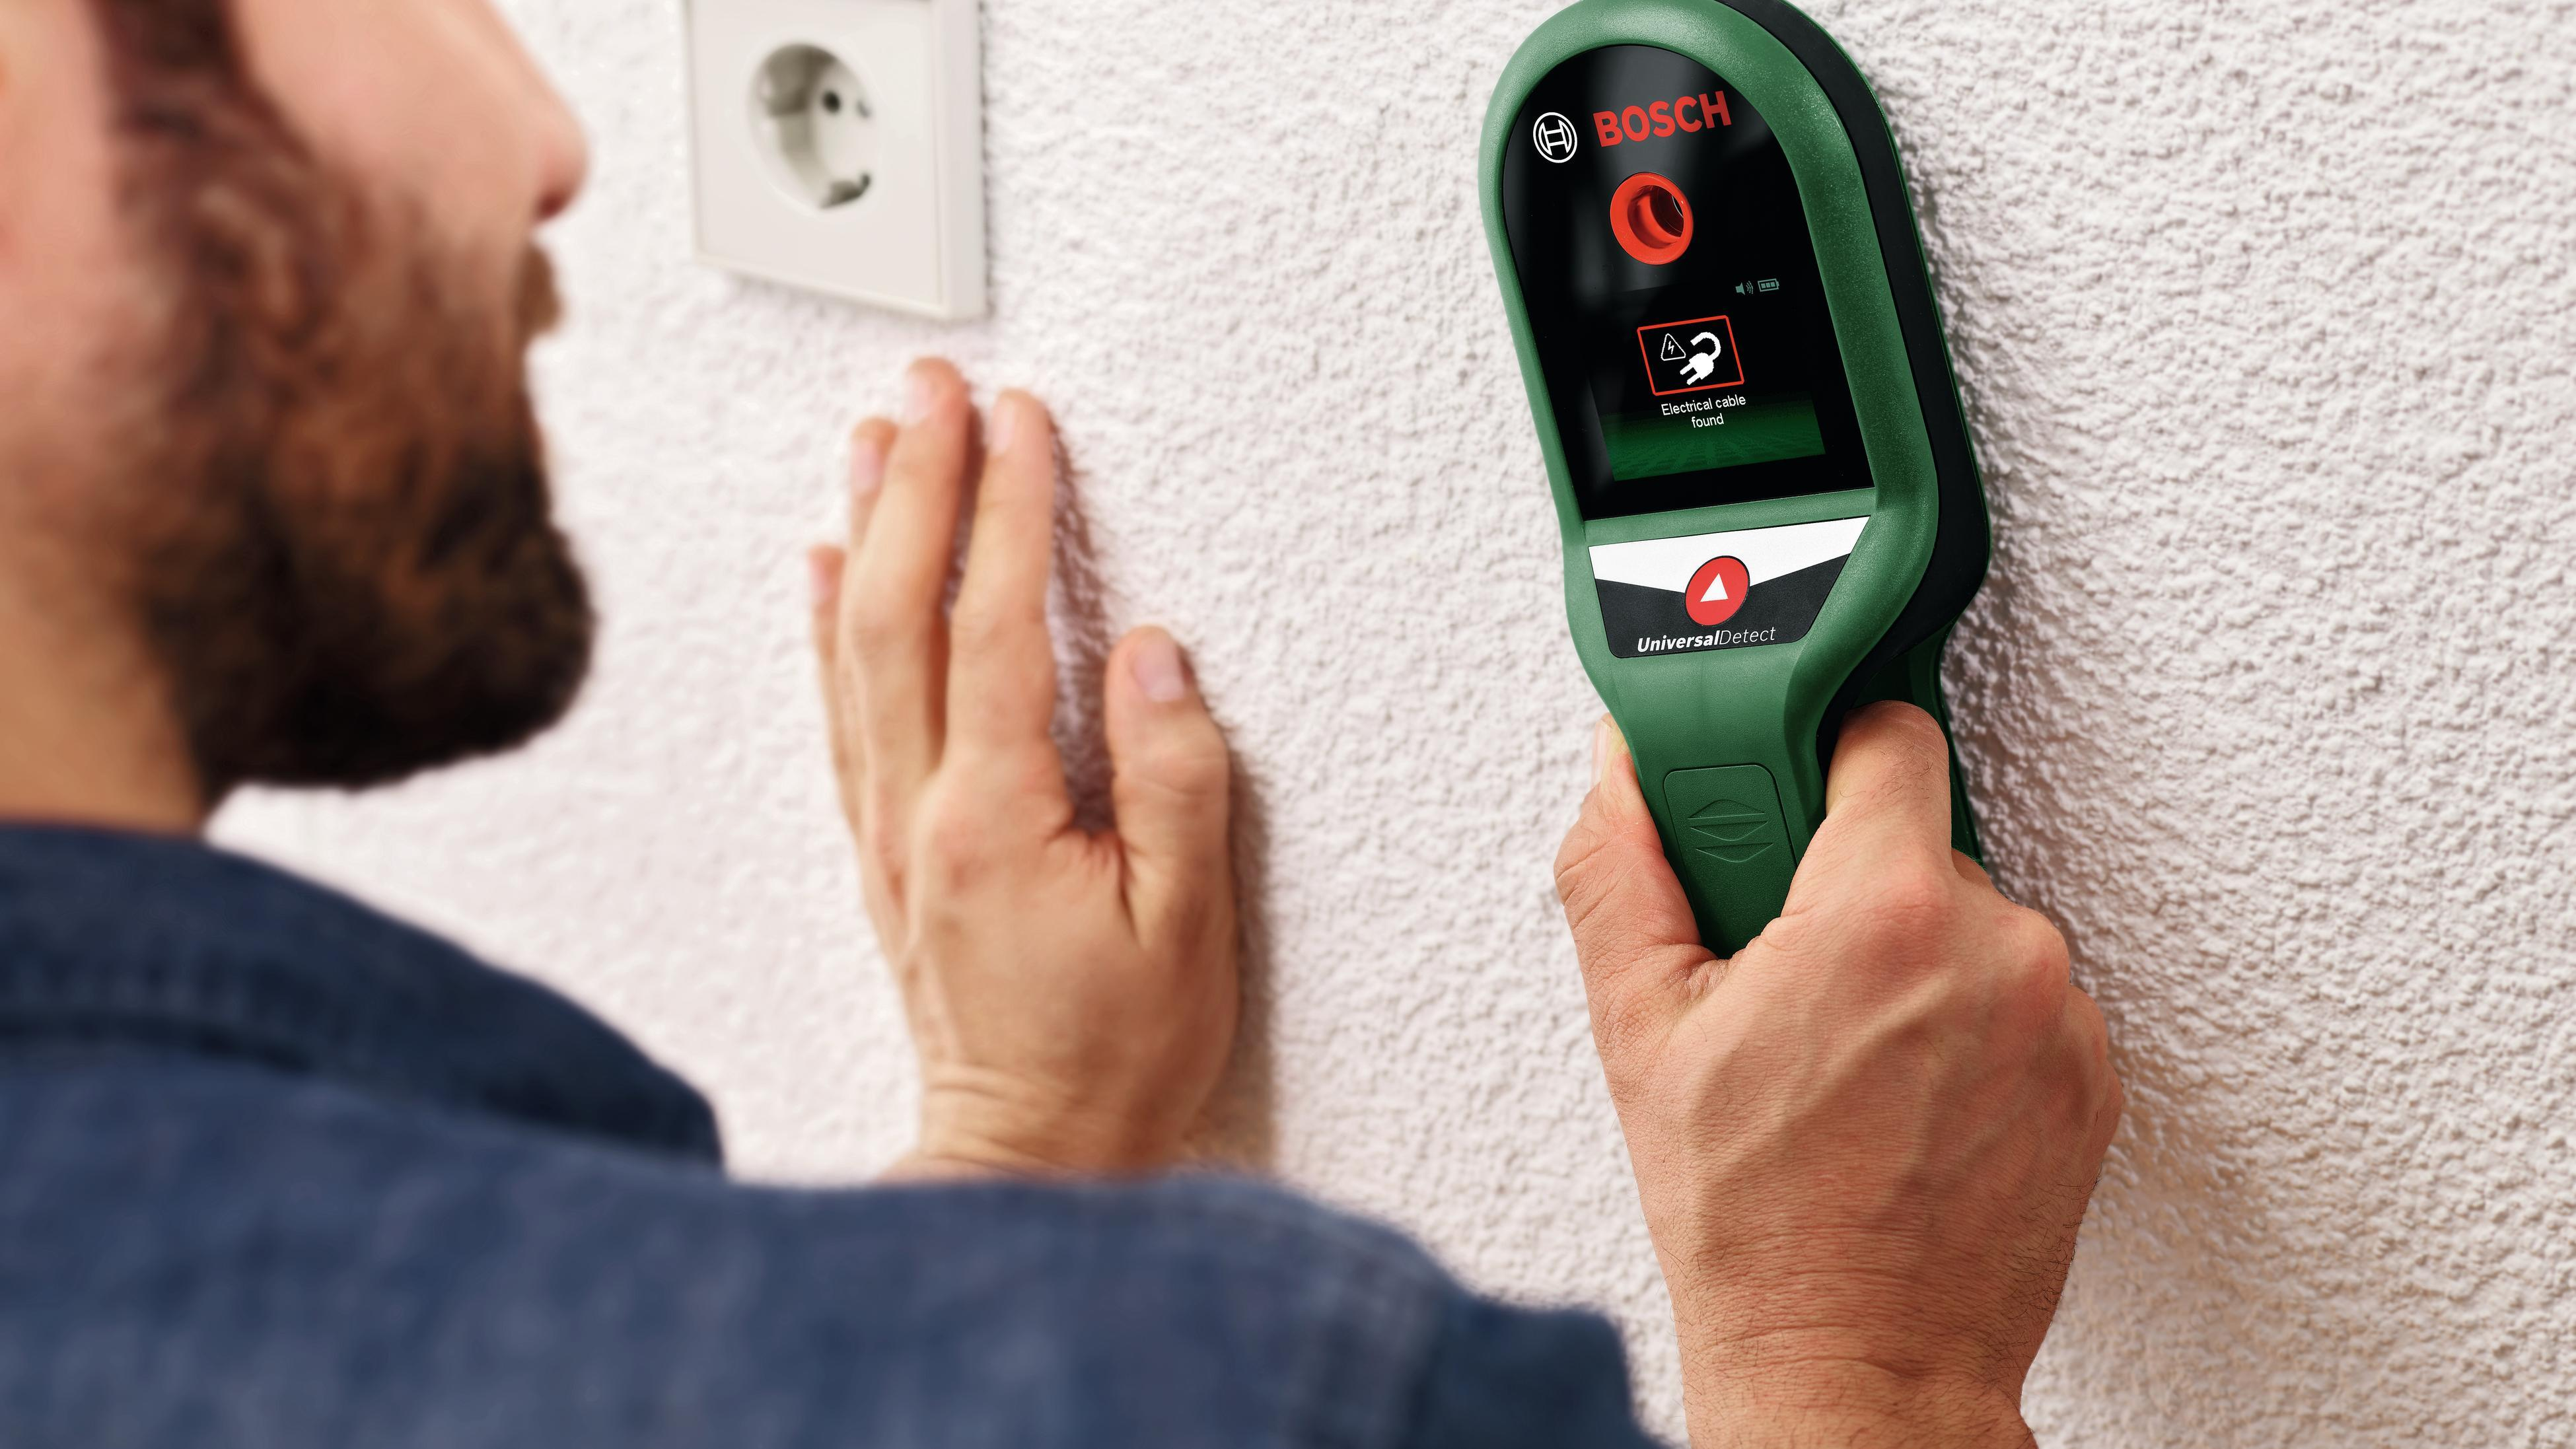 Person using stud finder on wall.